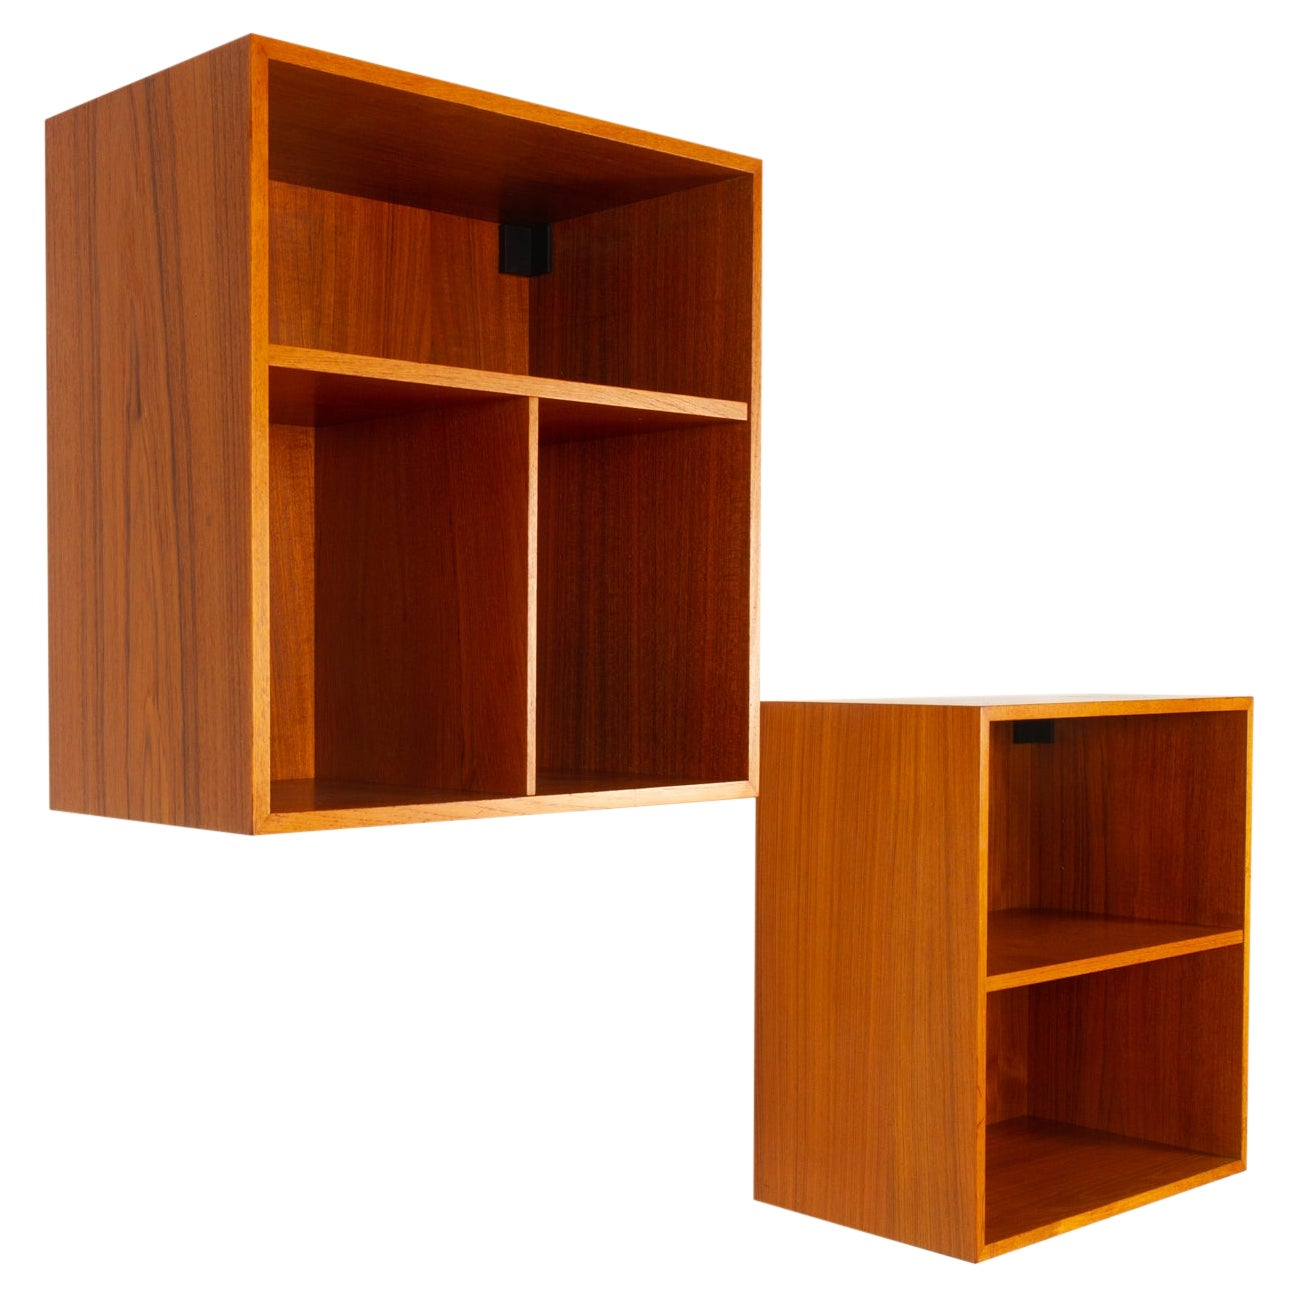 Pair of Danish Modern Wall Mounted Teak Bookcases, 1960s